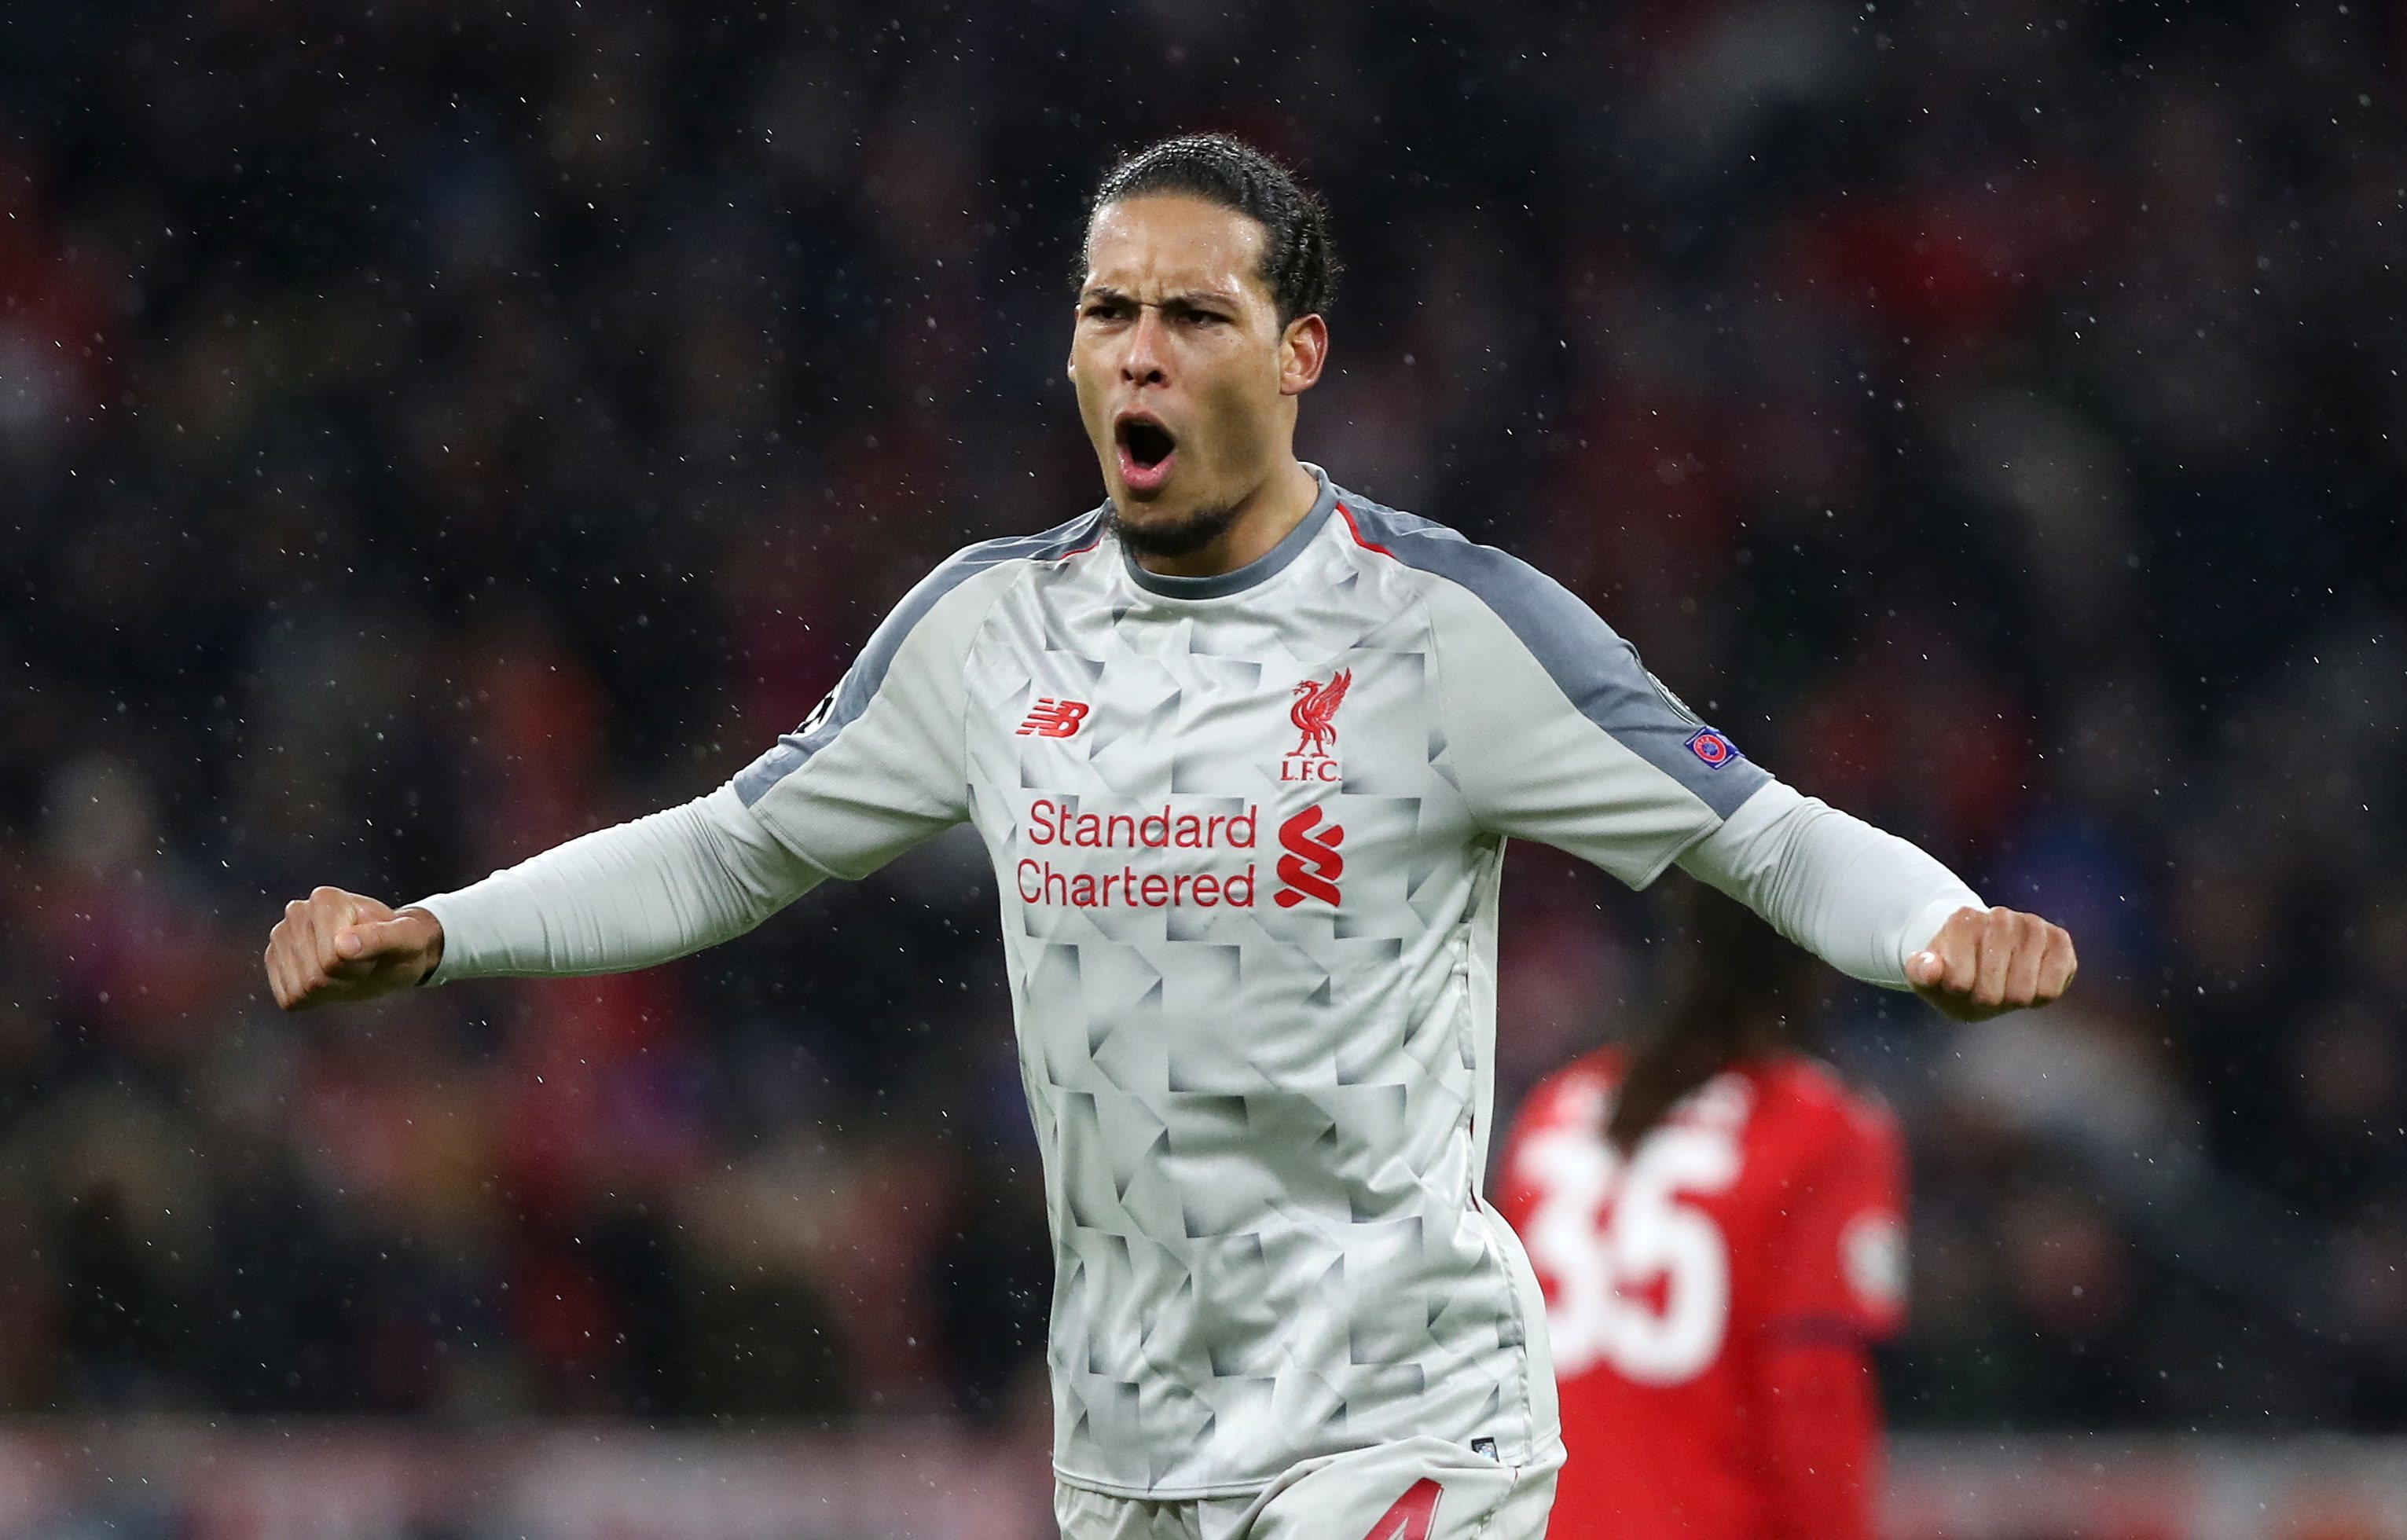 Liverpool's Virgil van Dijk named PFA Players' Player of the Year